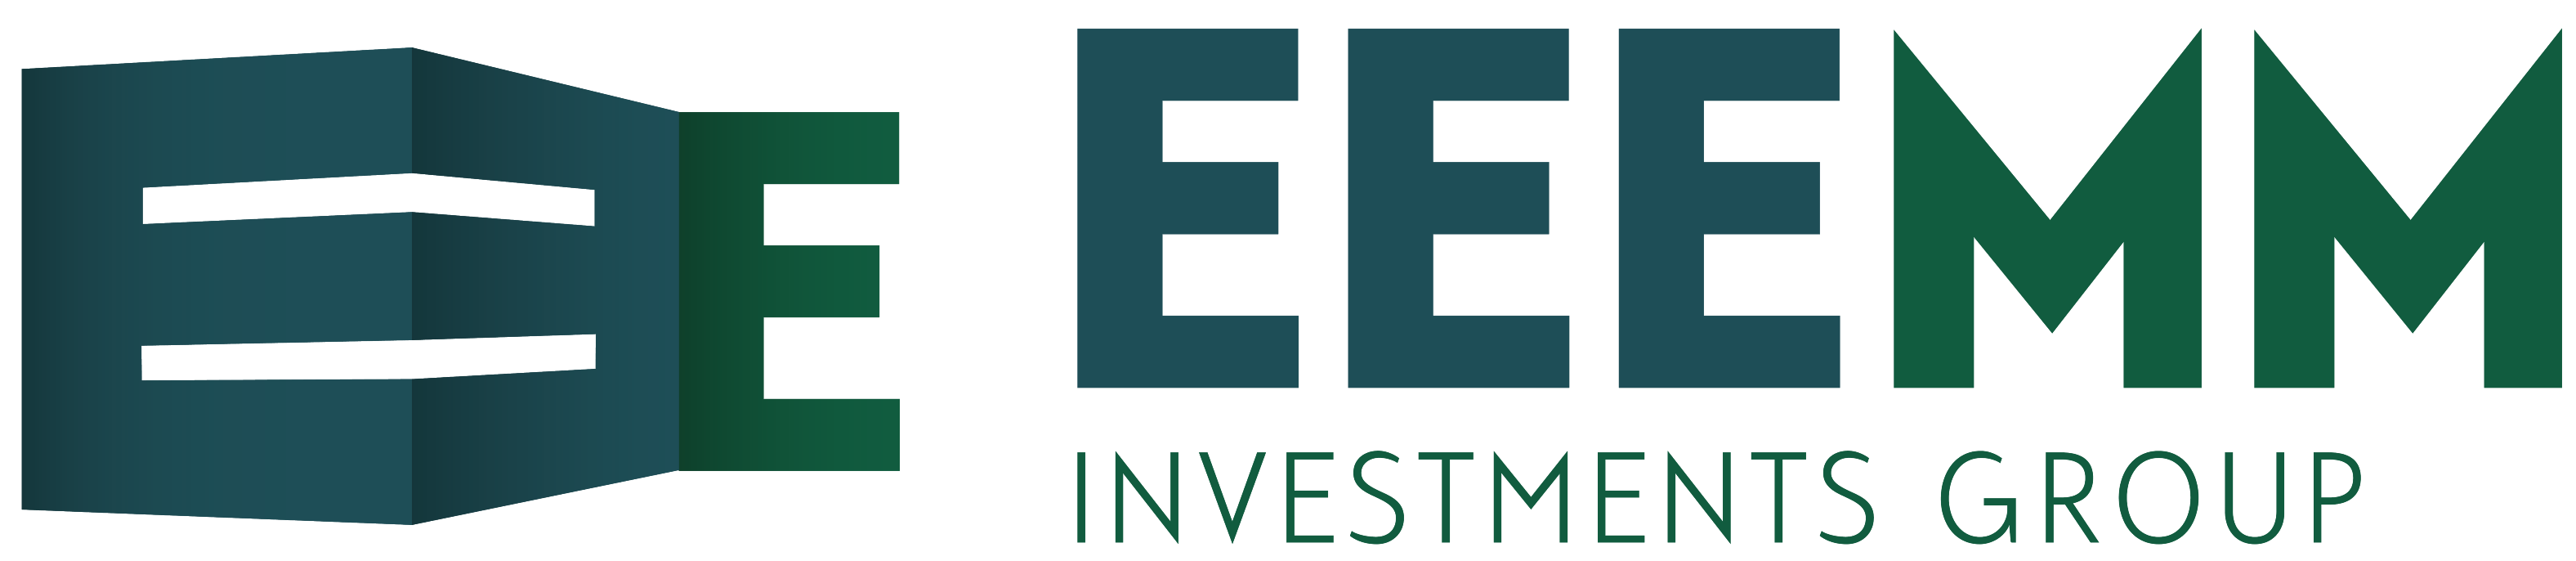 EEEMM INVESTMENTS GROUP OF COMPANIES